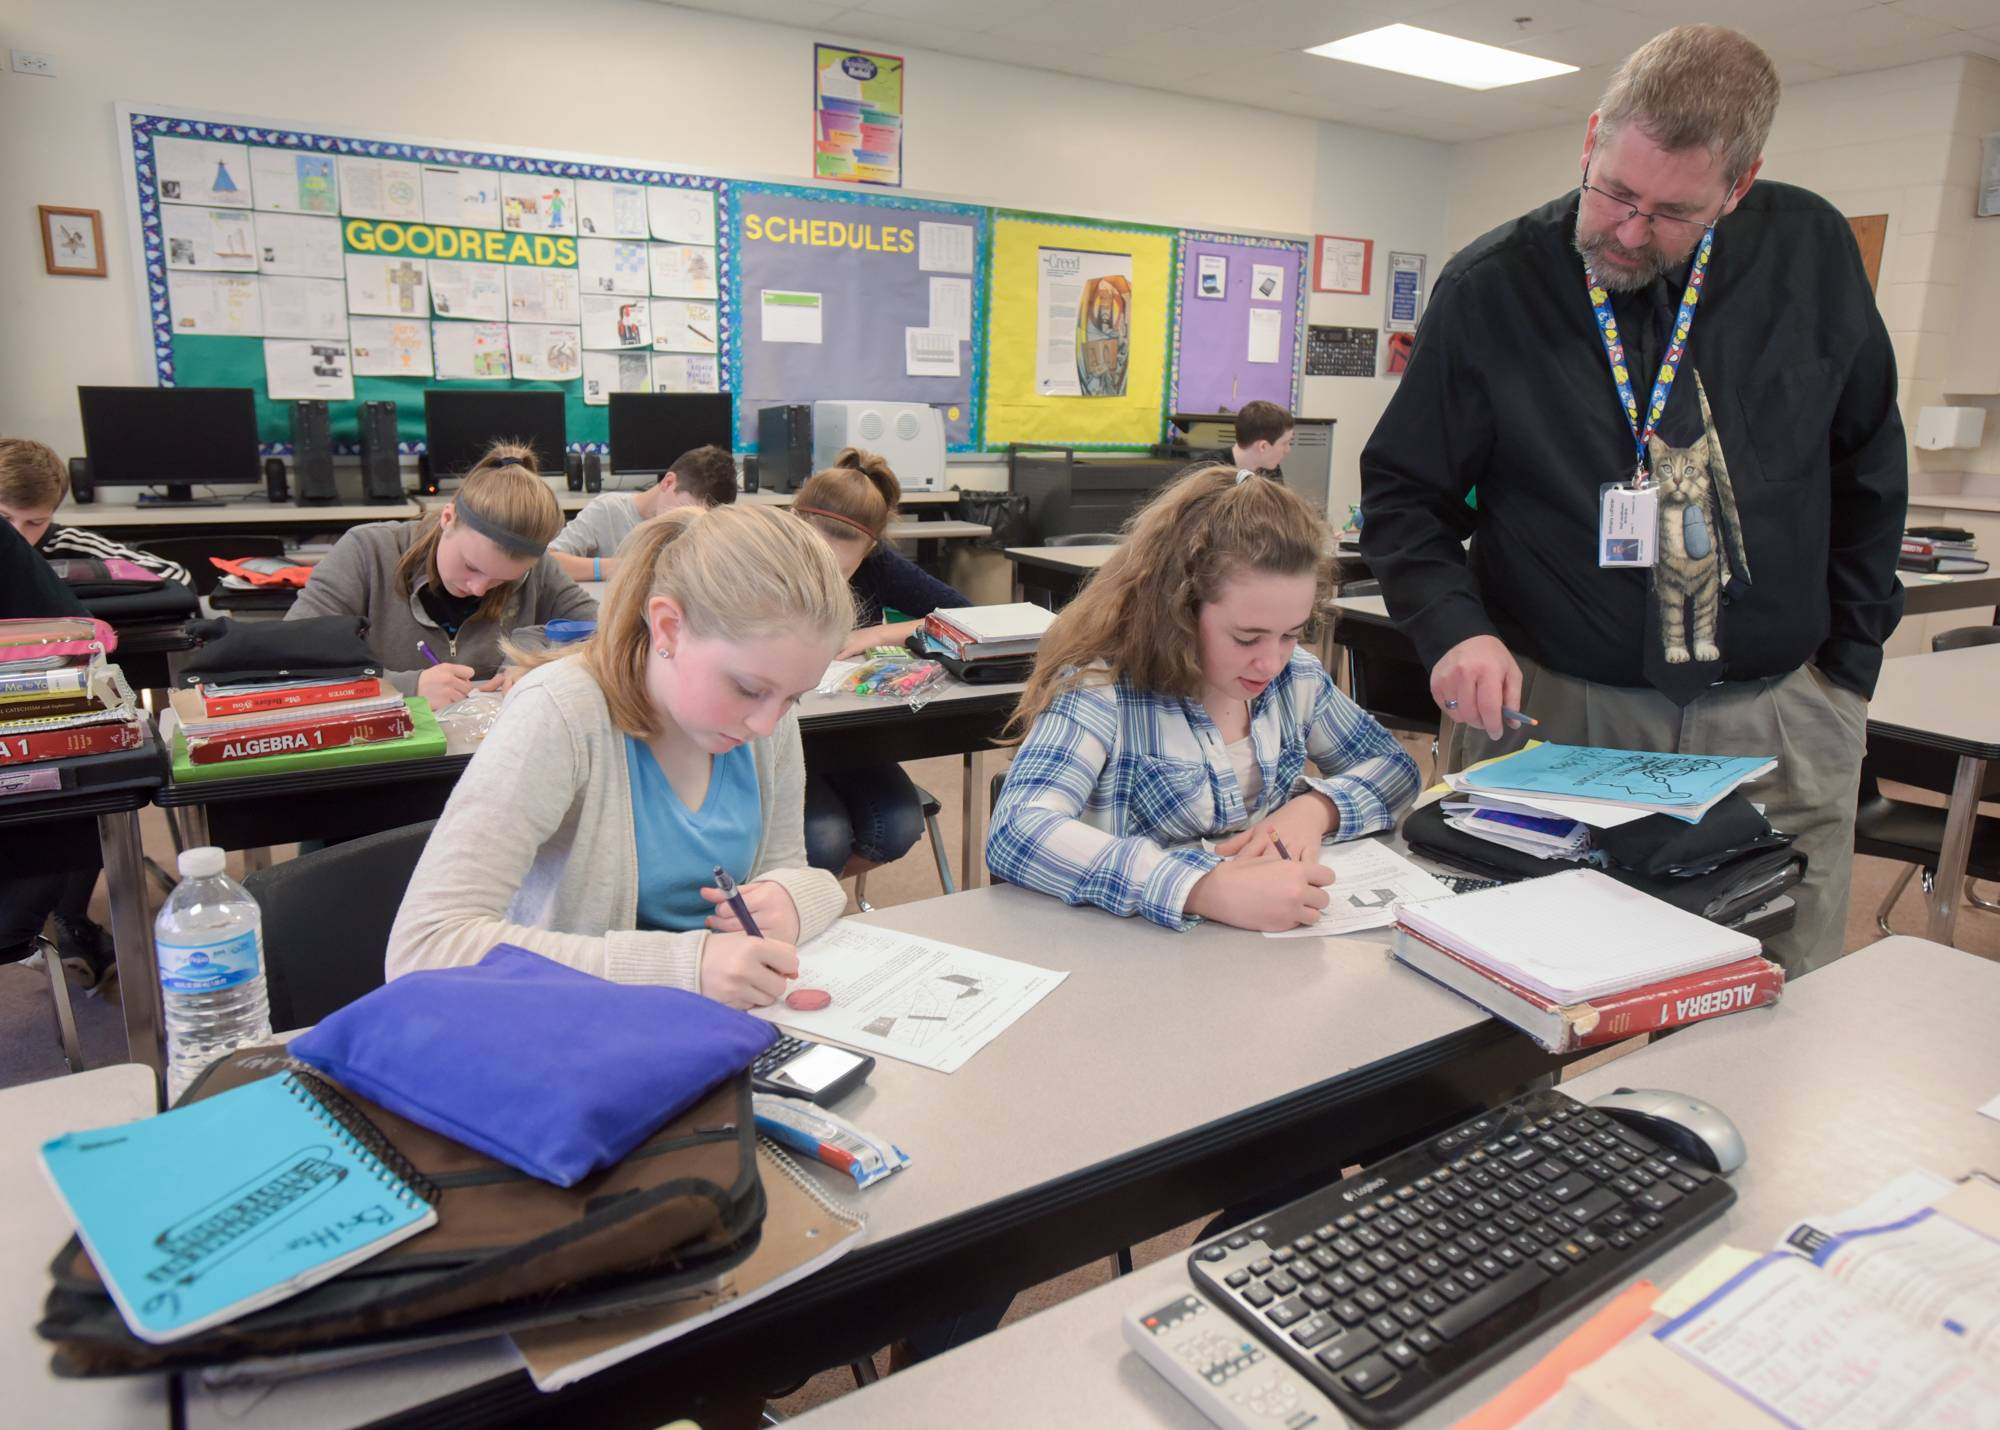 Bethany Lutheran School teacher Rob Johnson leads an Algebra I class at the Naperville school where he has taught for 15 years.